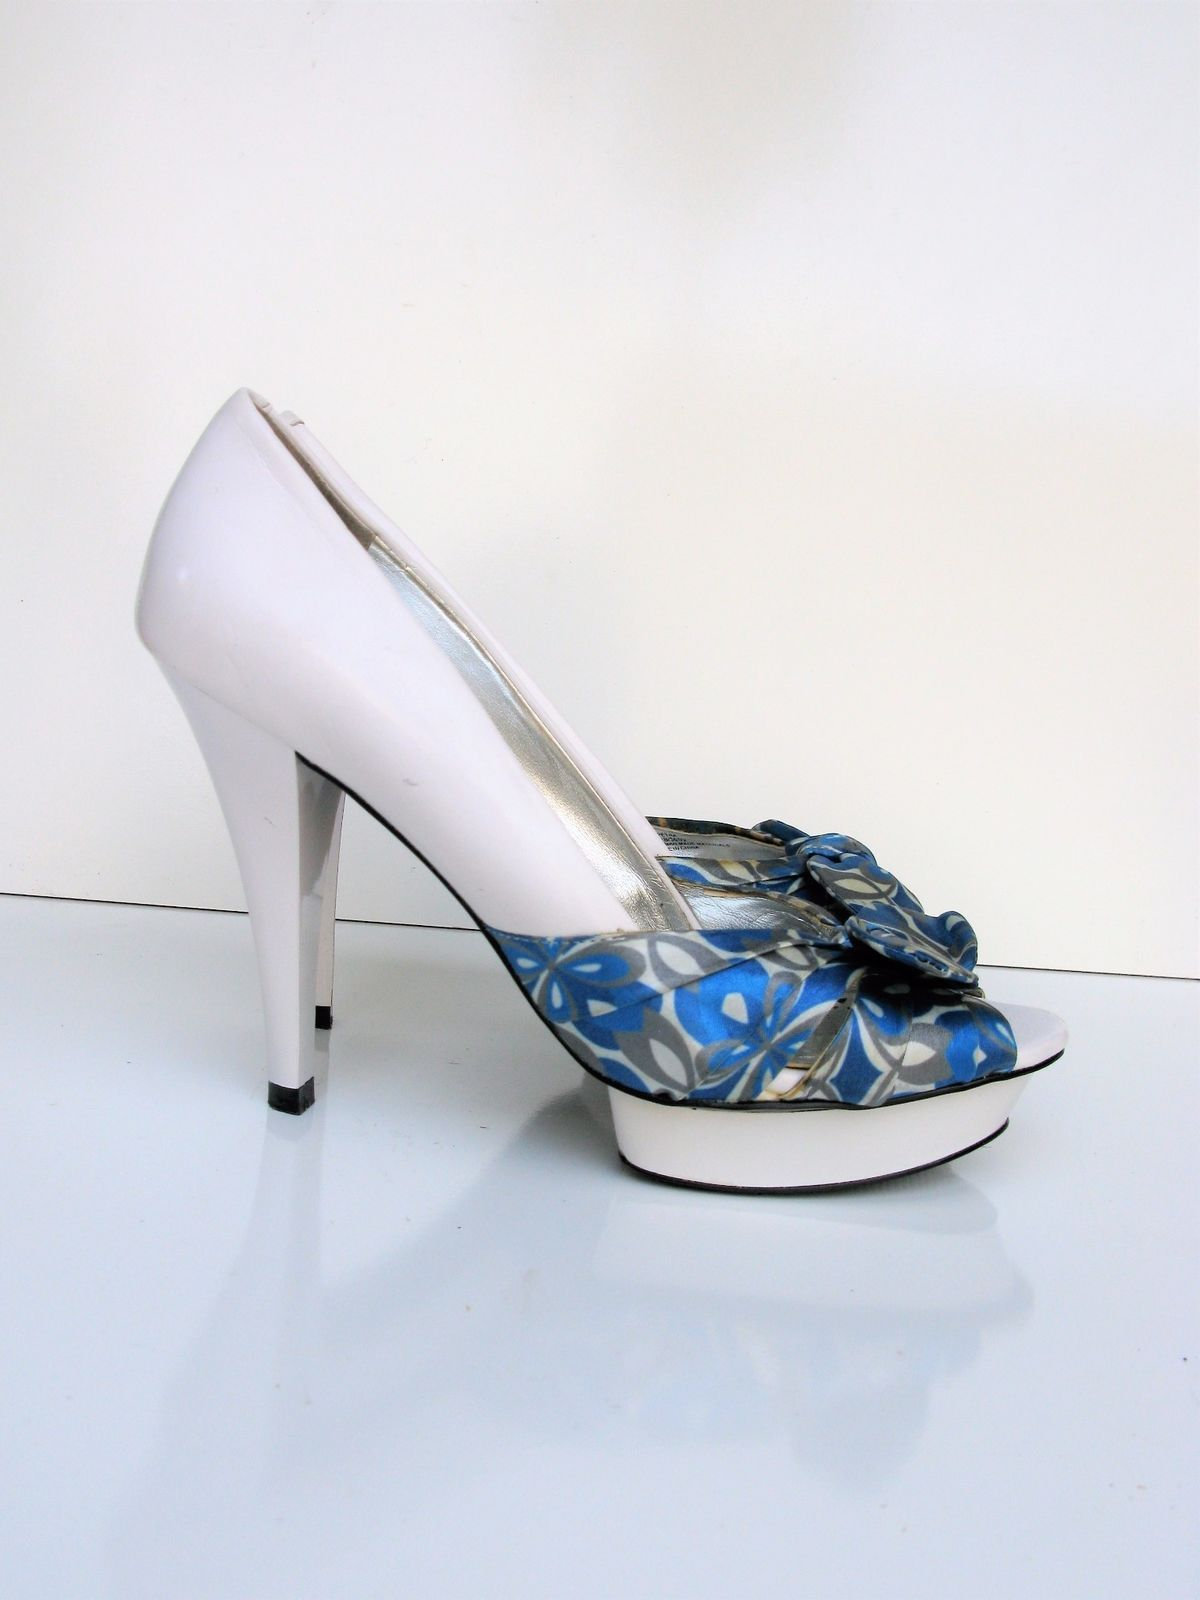 Peep Toe Pumps Heels BCBG Paris Petra Platform Peep Toe Shoes 6.5 $140  MSRP